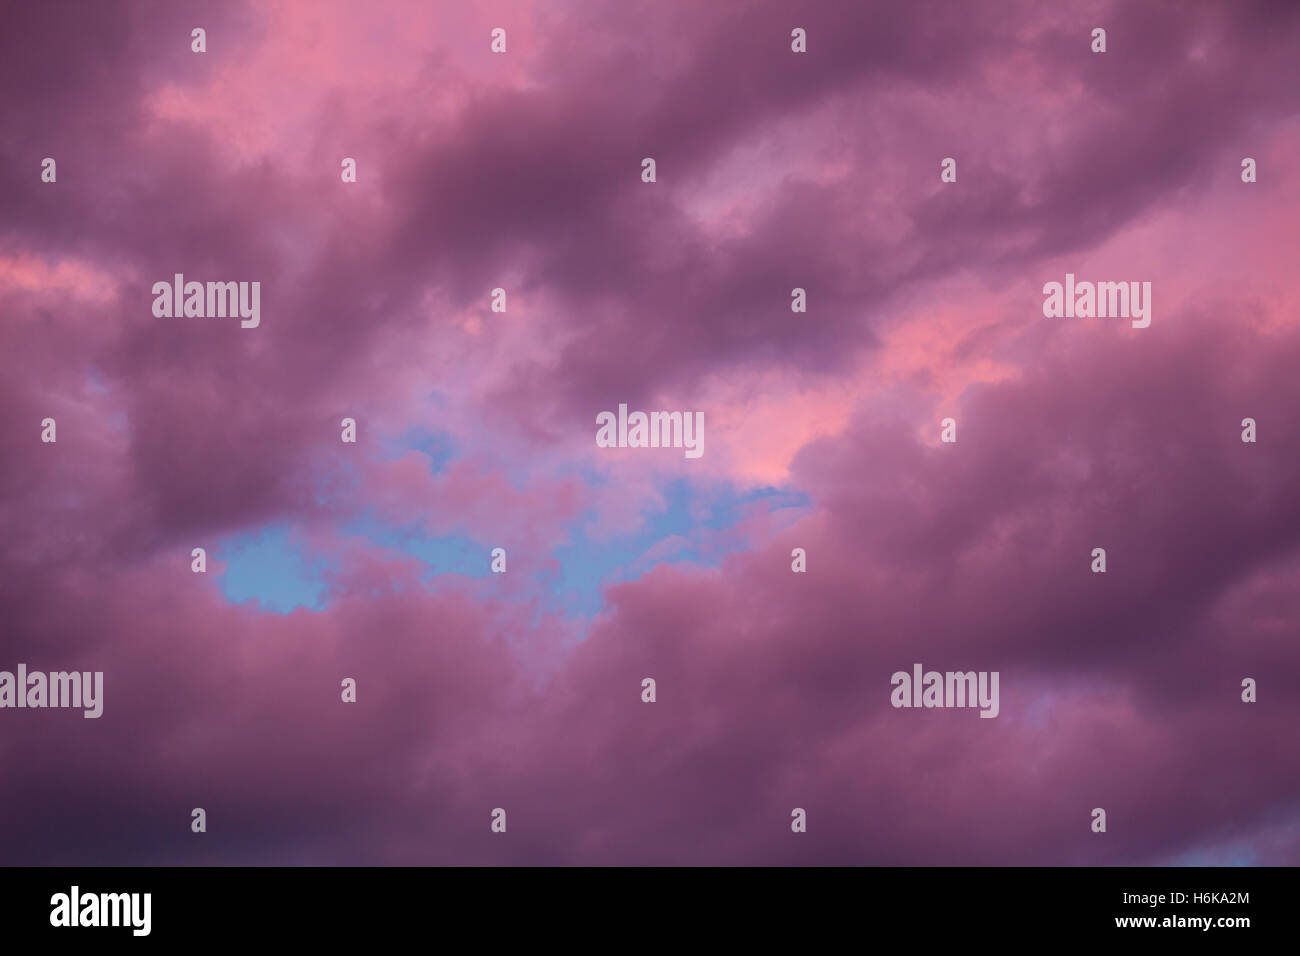 Colourful skyscape with versicolored purple clouds at sunset dusk - Stock Image